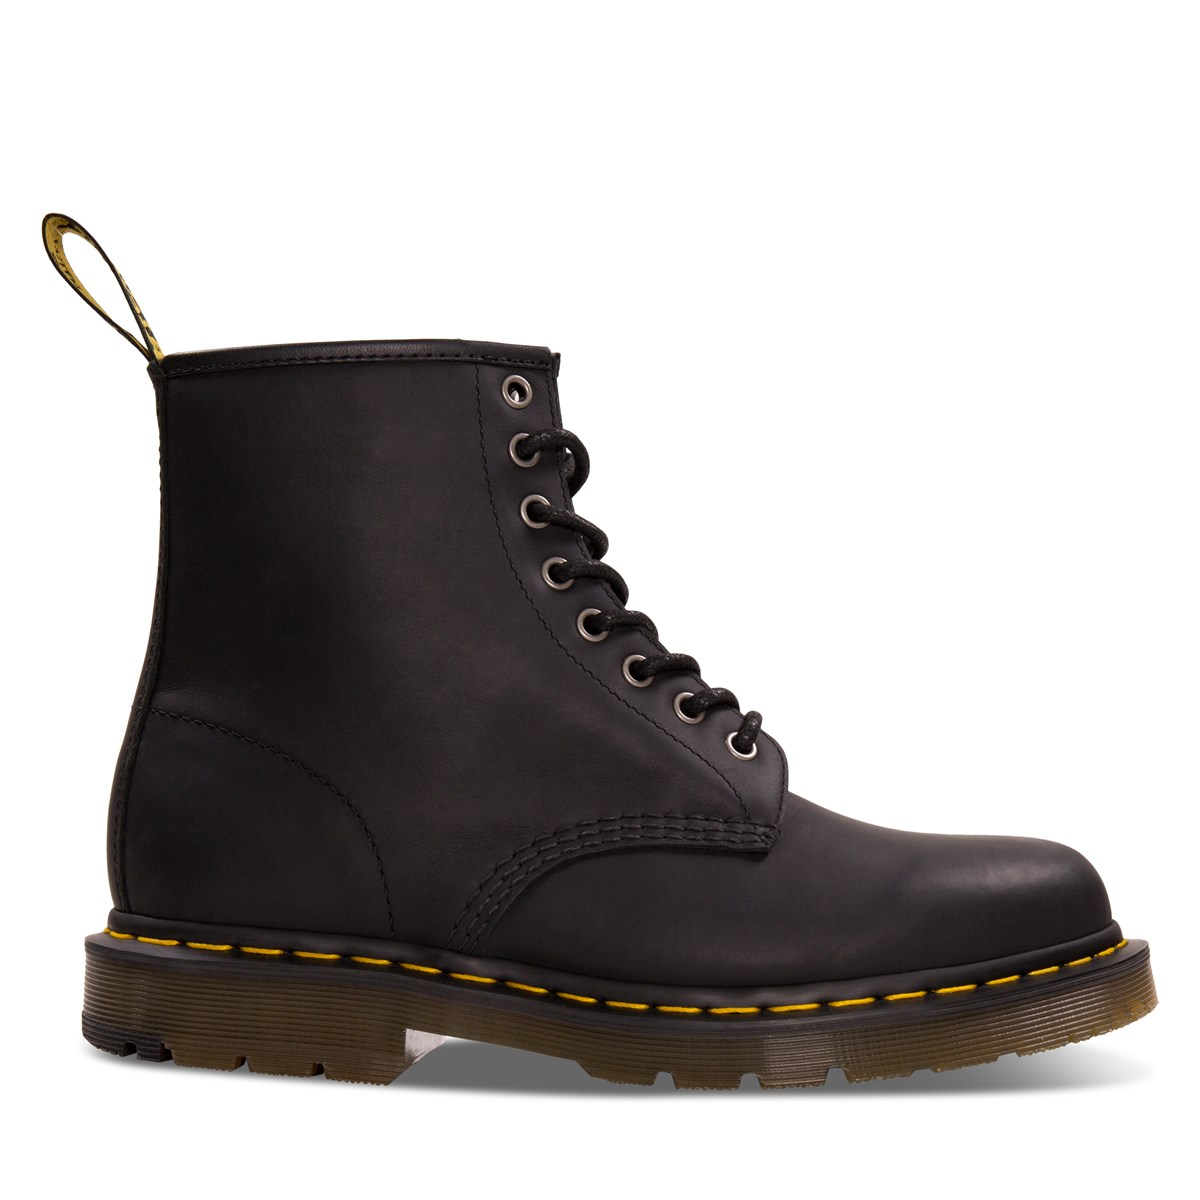 Men's 1460 Snowplow Boots in Black